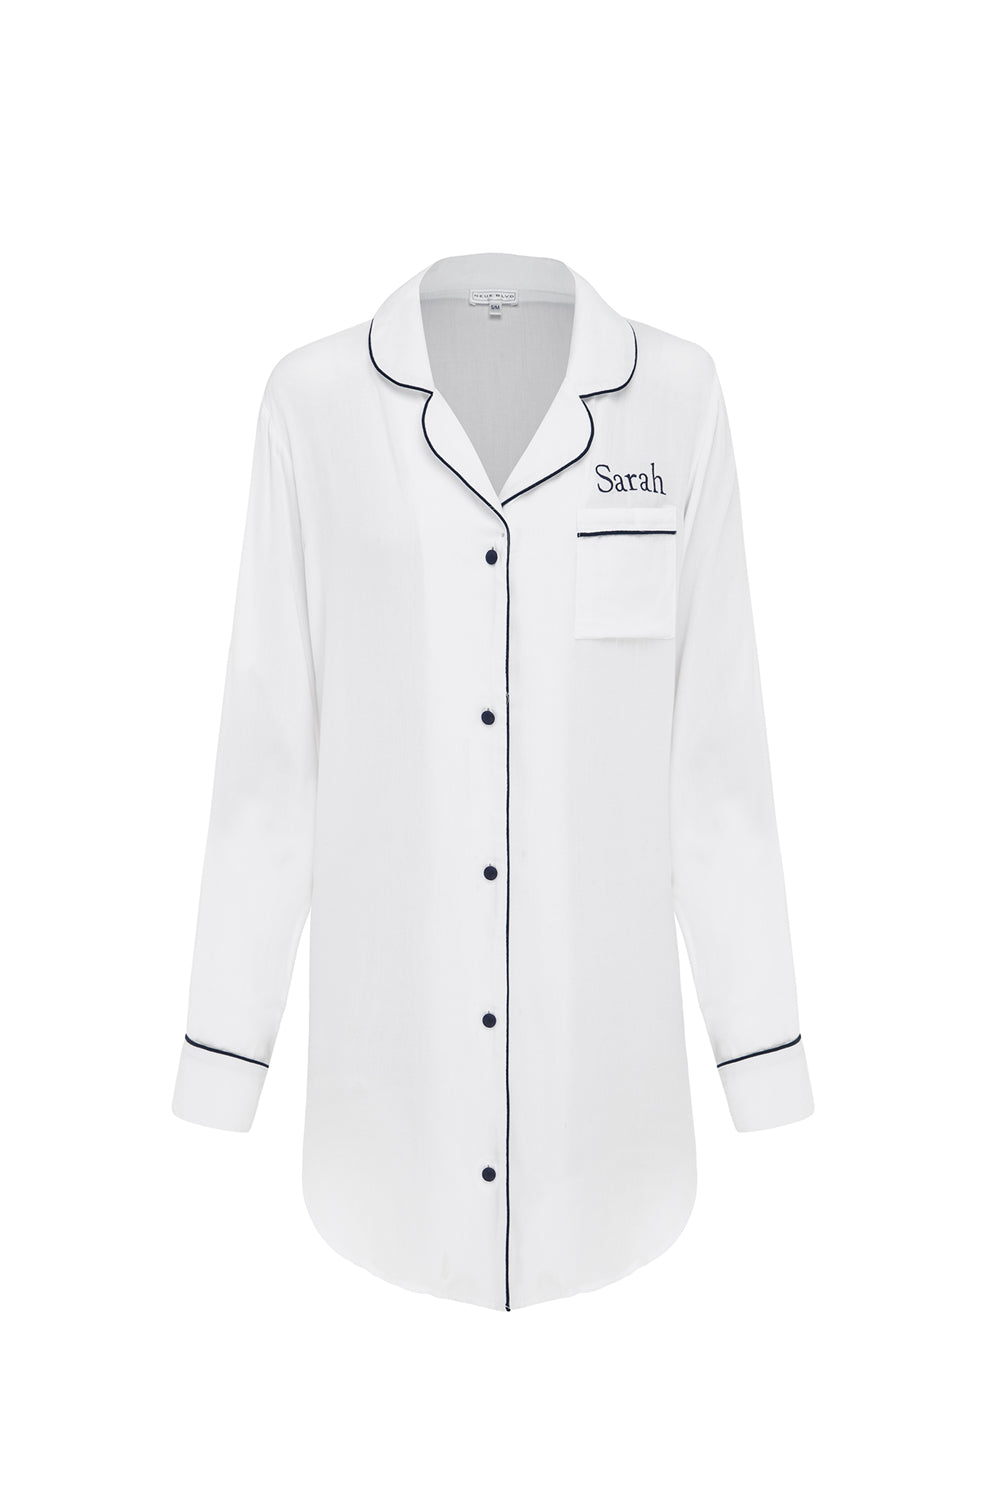 White Night Shirt Personalised Luxury Sleepwear for wedding